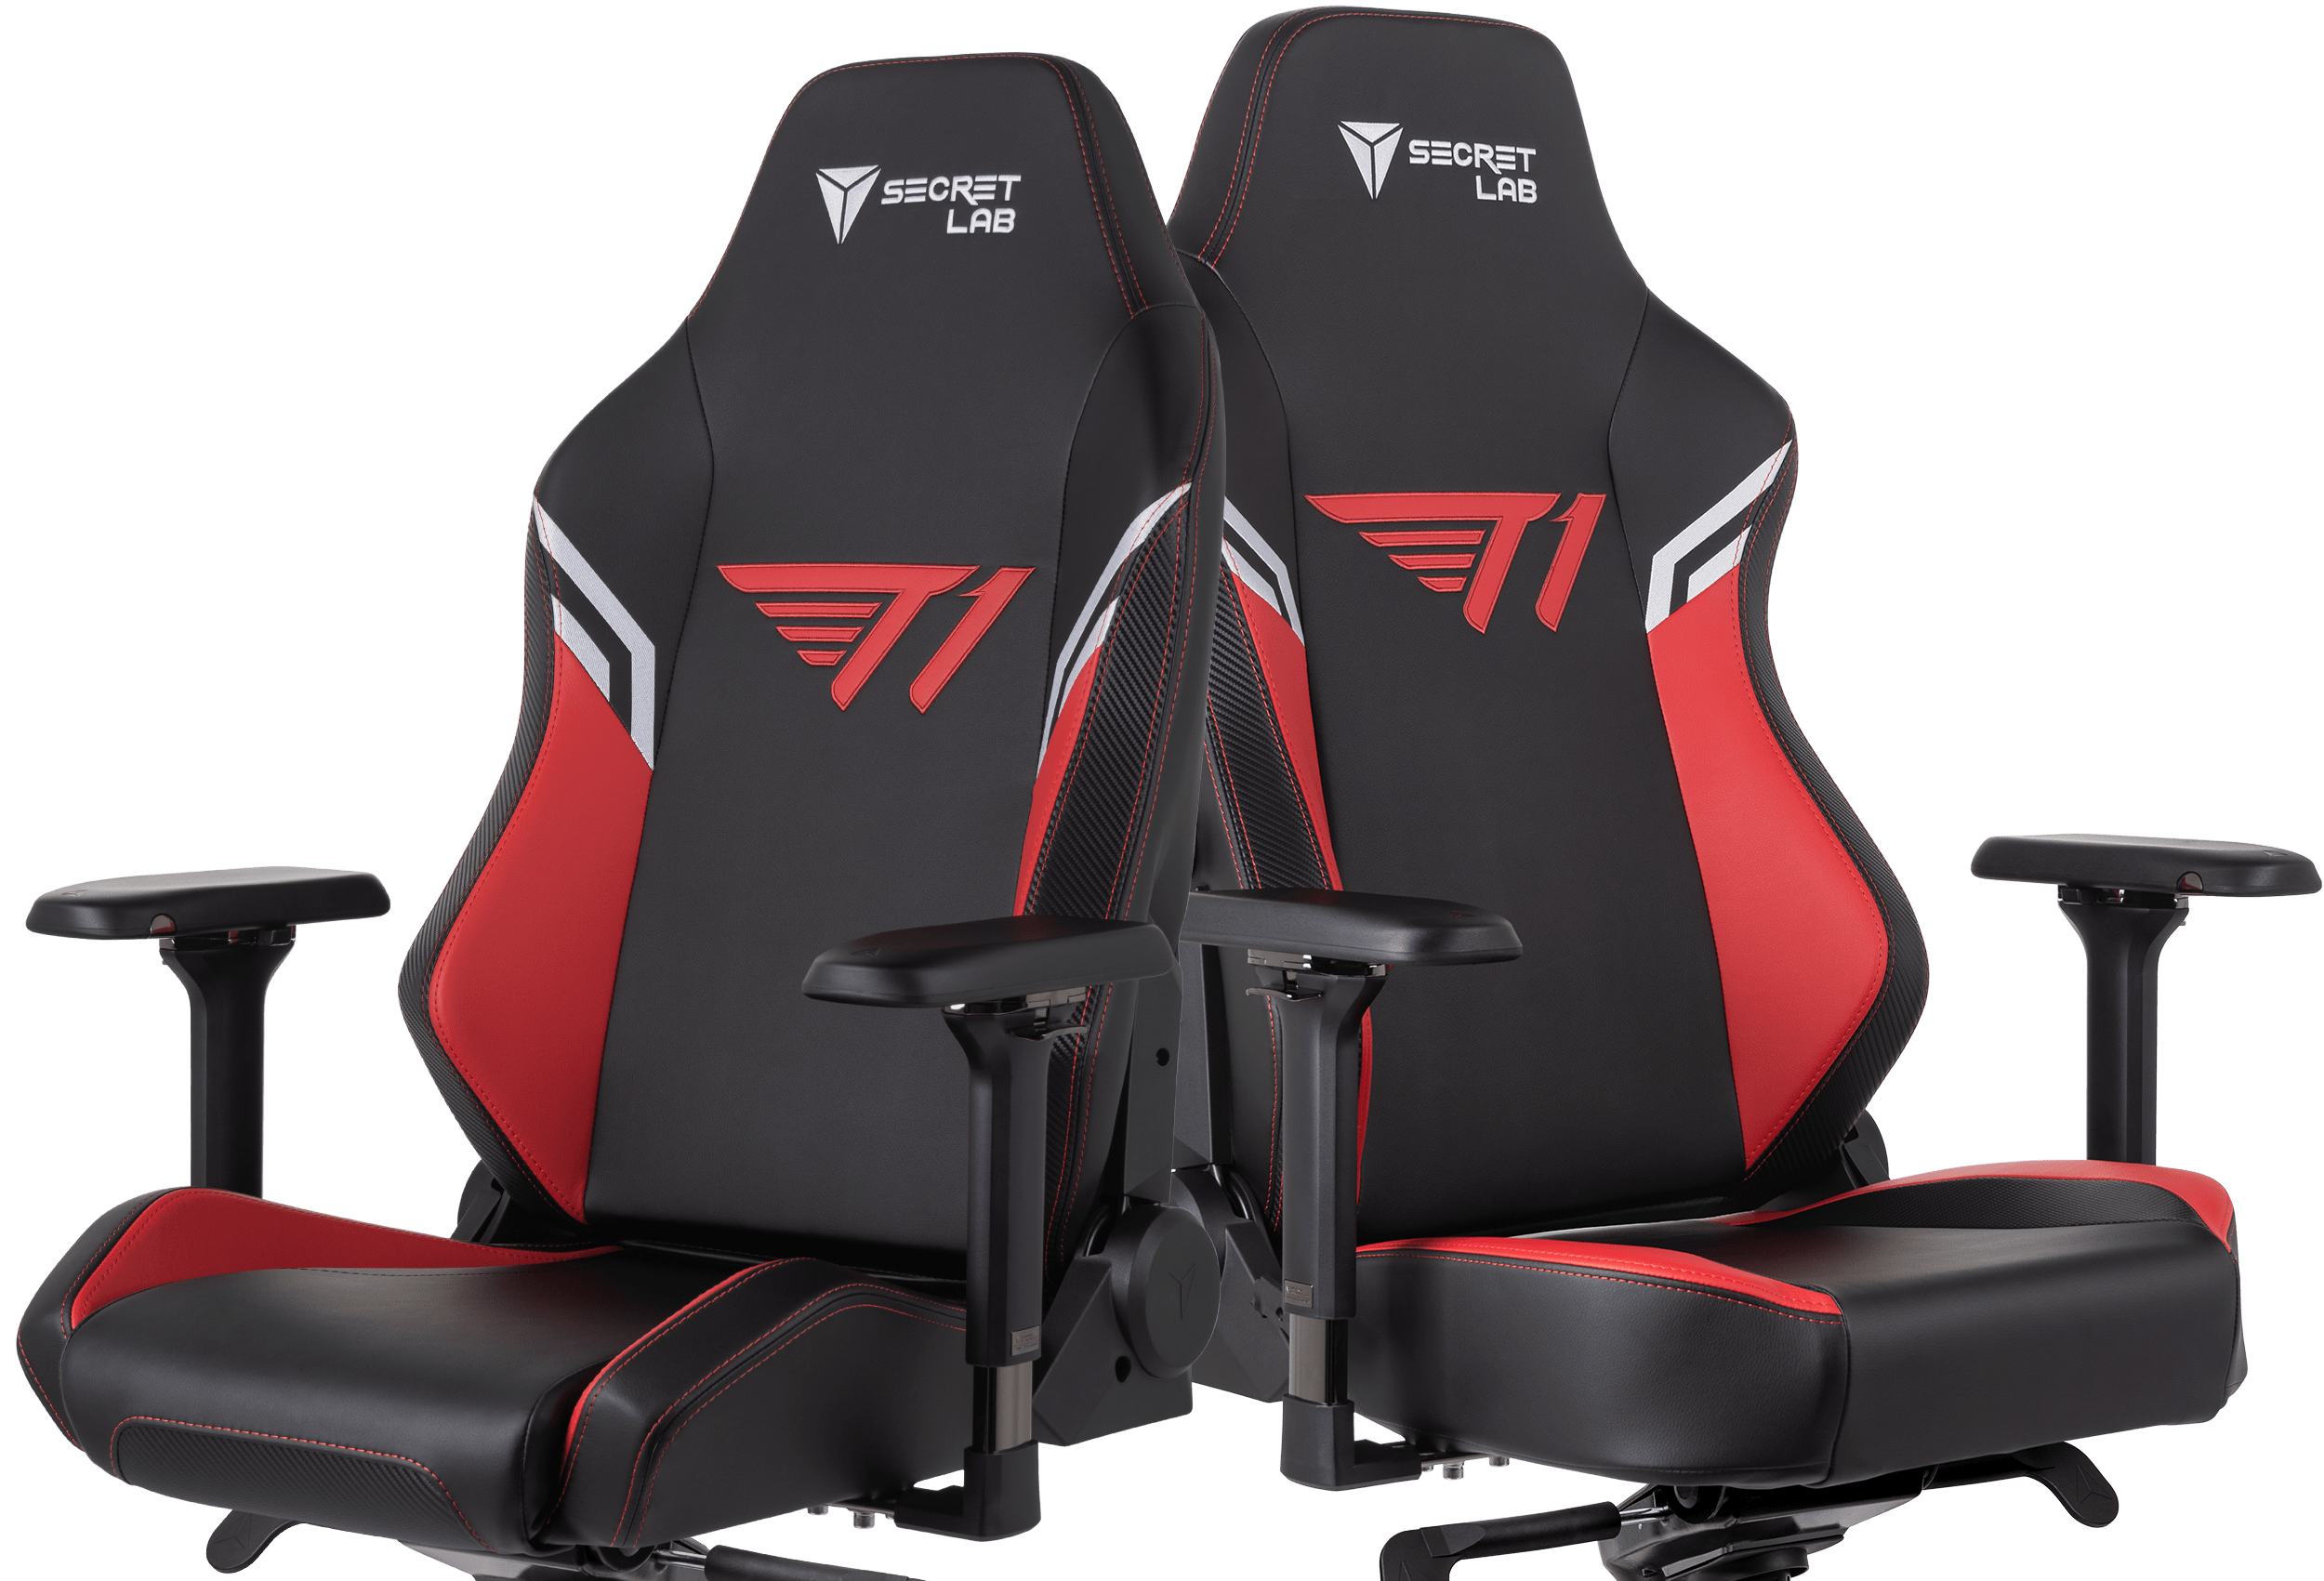 Secretlab x T1 - OMEGA and TITAN Special Edition Gaming Chairs